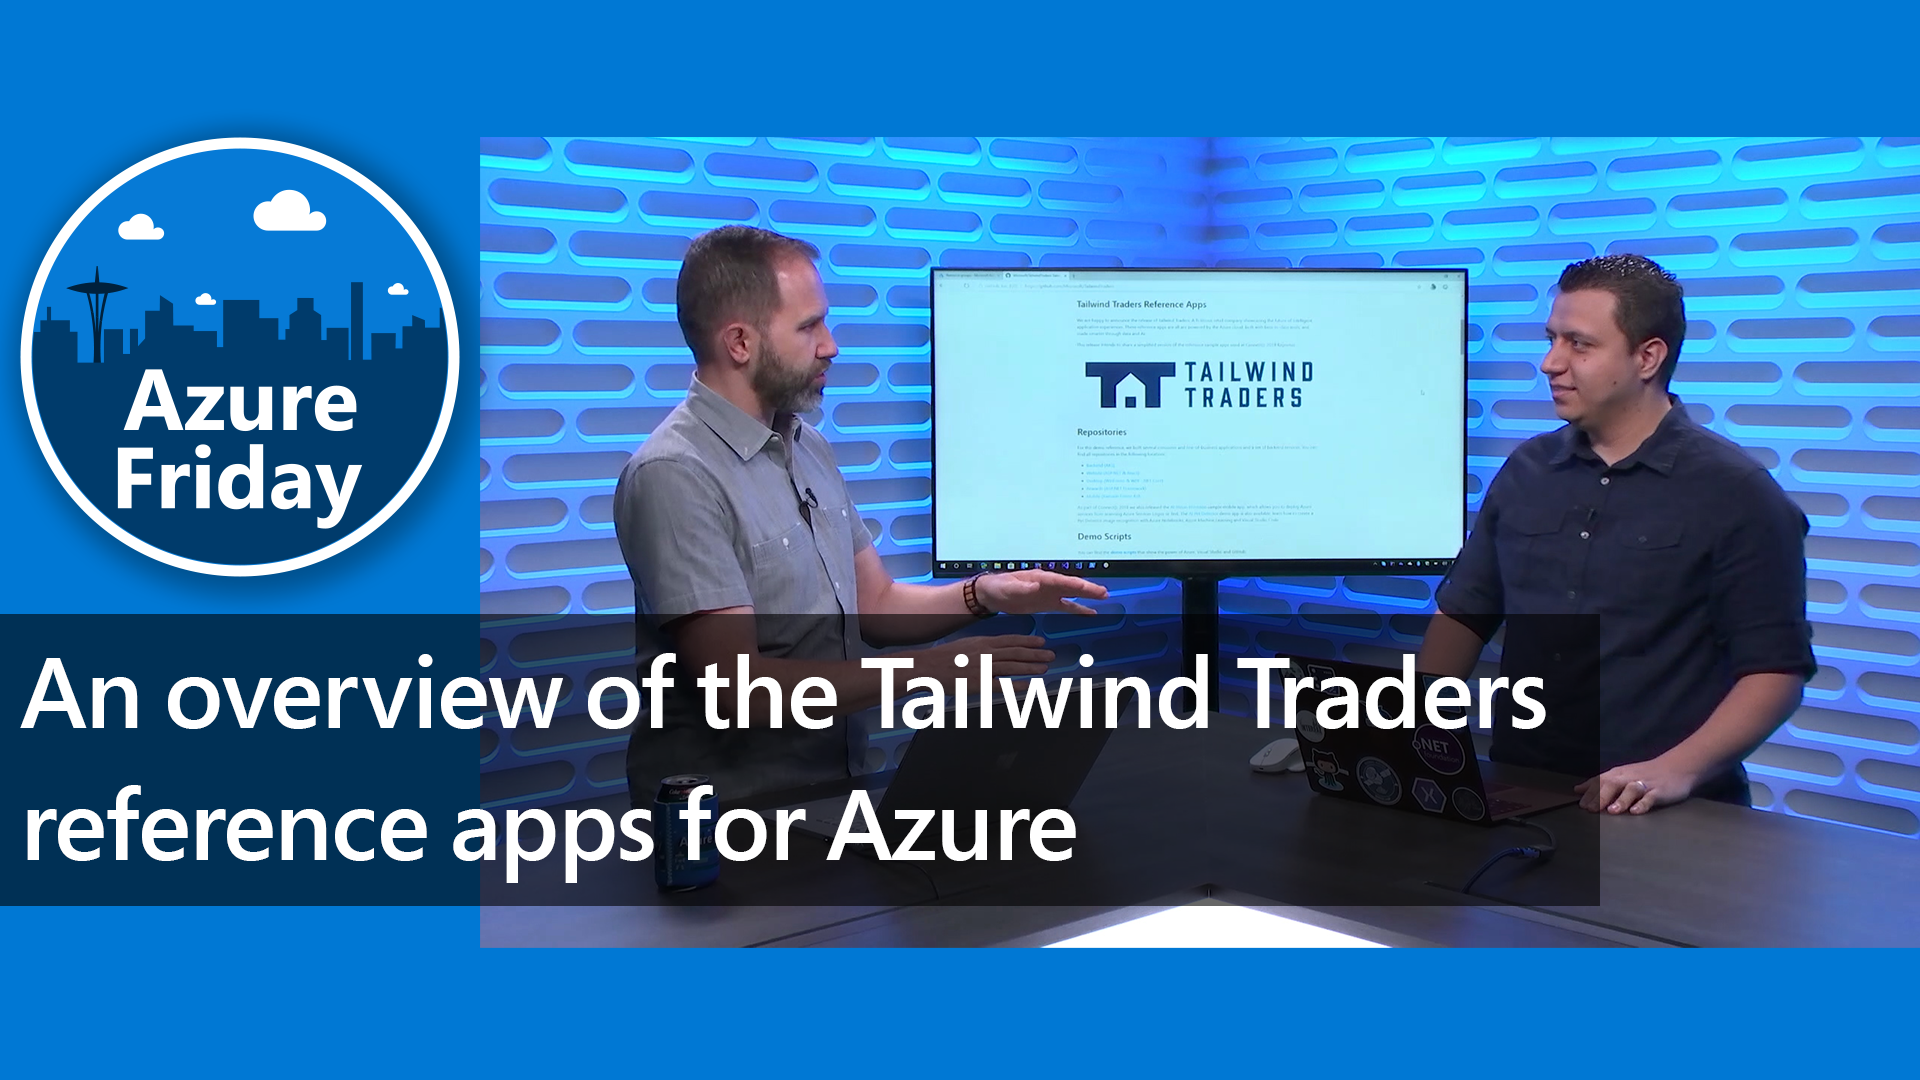 An overview of the Tailwind Traders reference apps for Azure